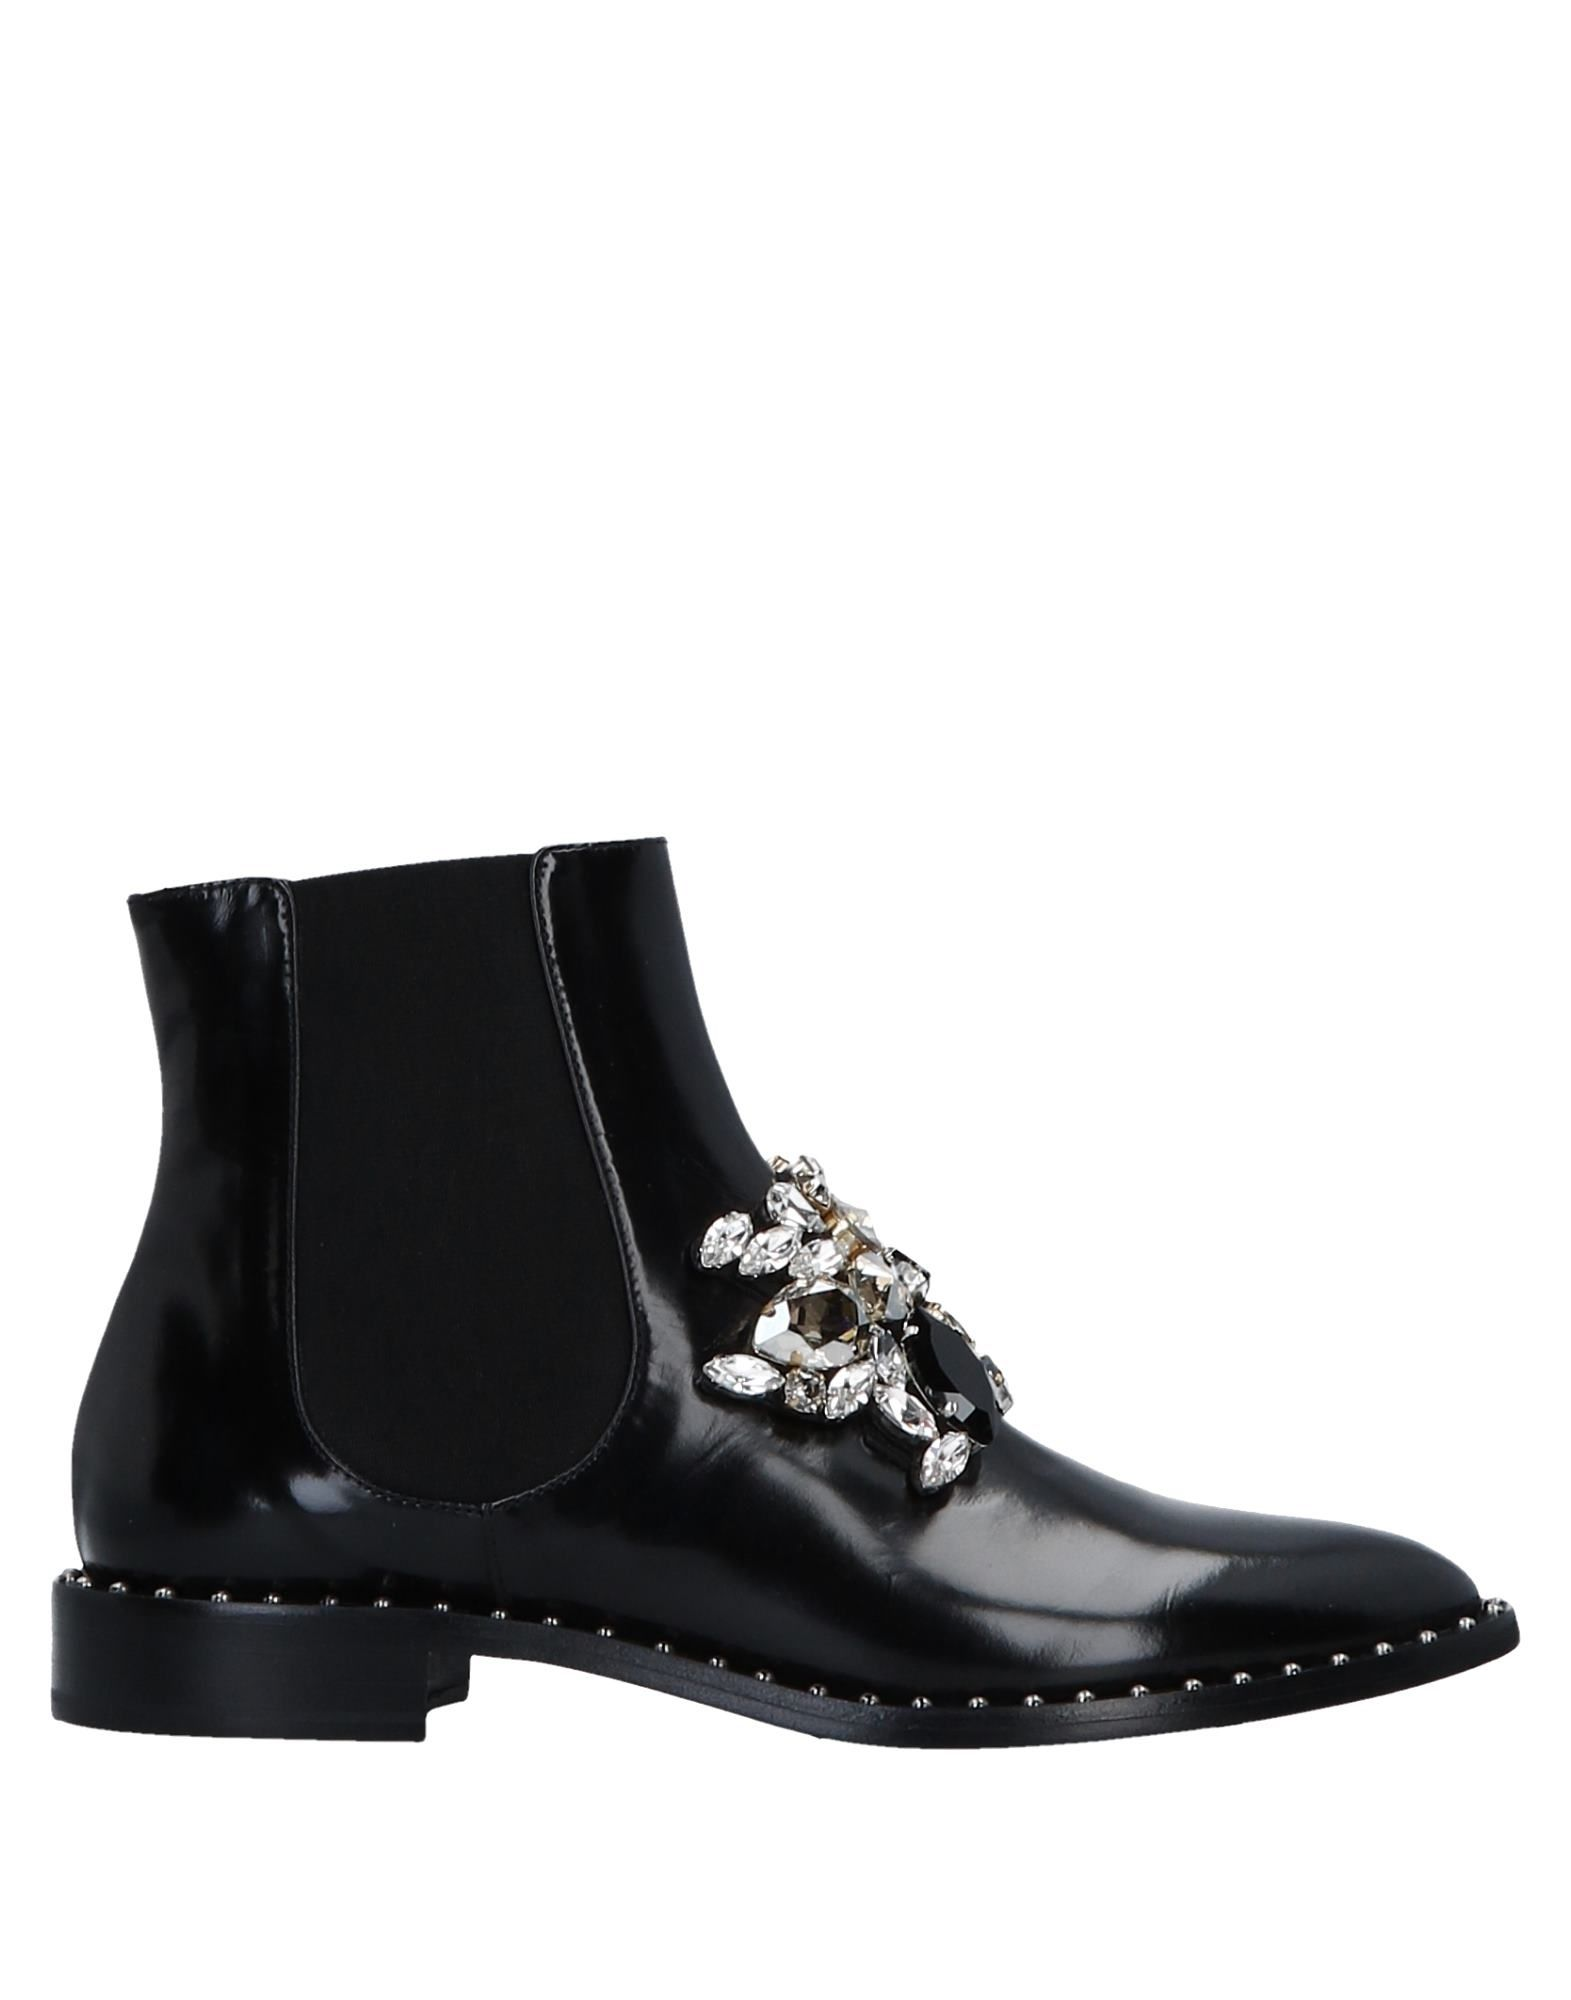 GEDEBE Ankle Boots in Black